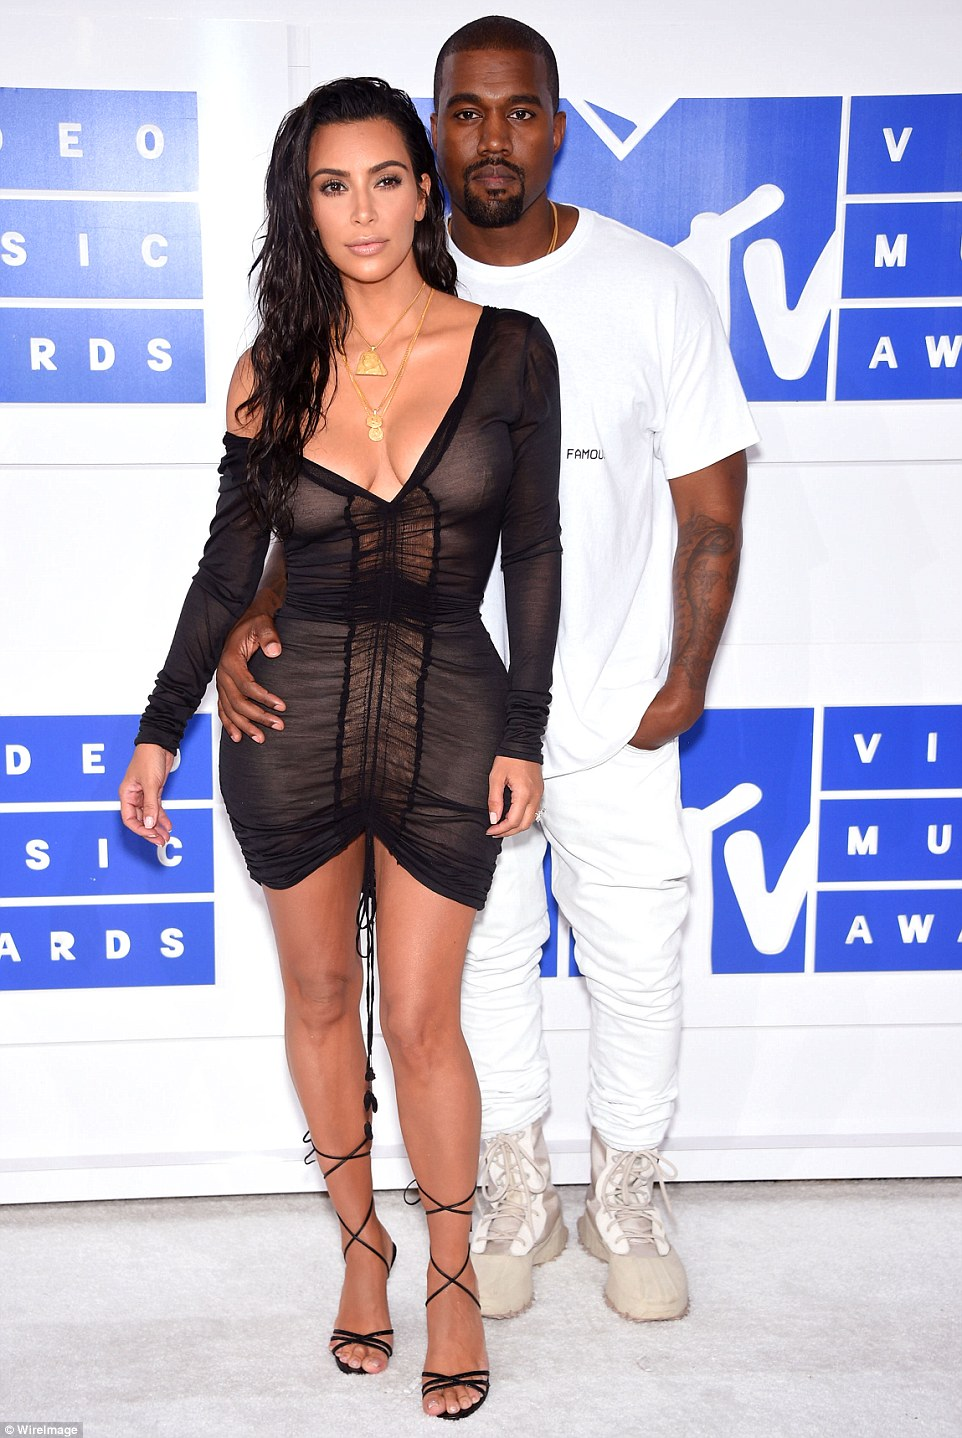 So Famous: Kim was joined by husband Kanye who later made a speech and presented his new video Fade